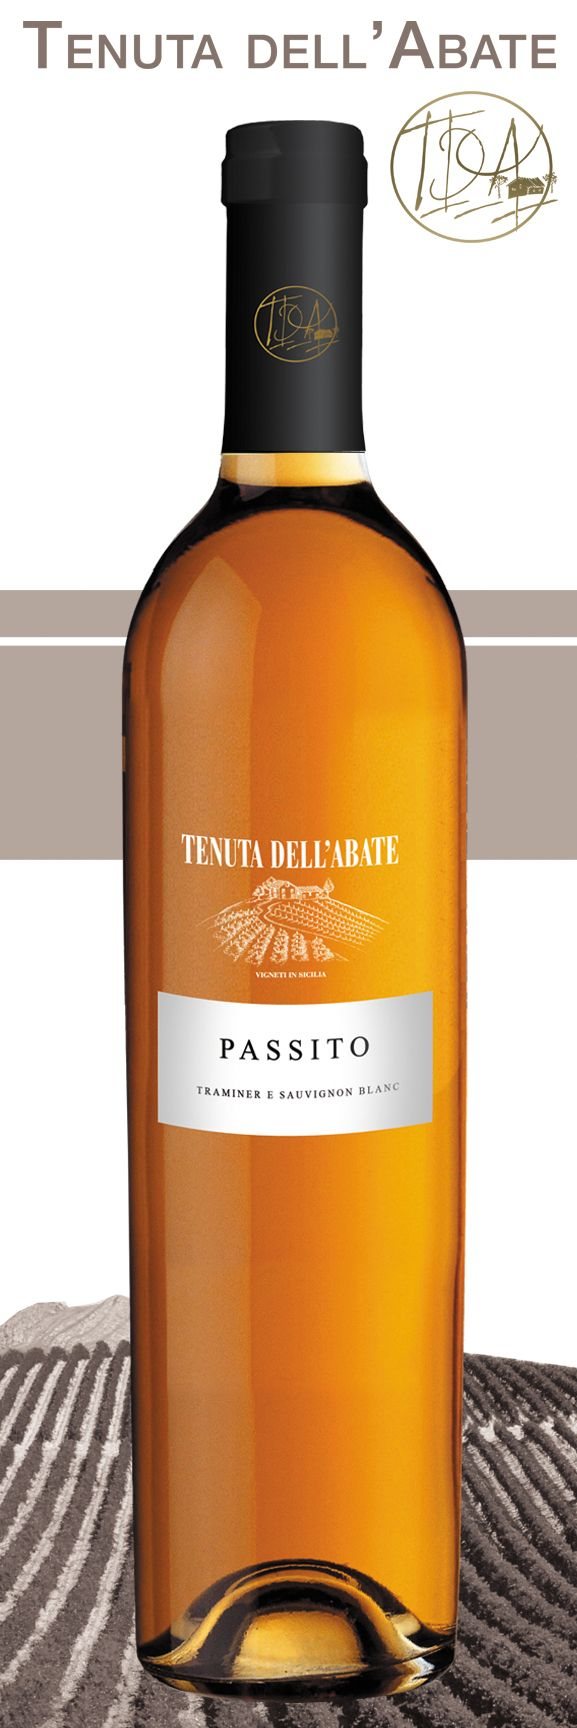 Raisin - Traminer / Sauvignon Blanc  Yellow color with golden hues. The nose can be seen hints of pear and other fruit and lingering aftertaste with saline. Bottle of 50 cl.  Type of wine: White I.G.P. Sicily Joint production: Caltanissetta  Variety: Traminer / Sauvignon Blanc Bottle: 50 cl  Alcohol content: 11% vol. +393450632153 CALL U.S. TO BUY